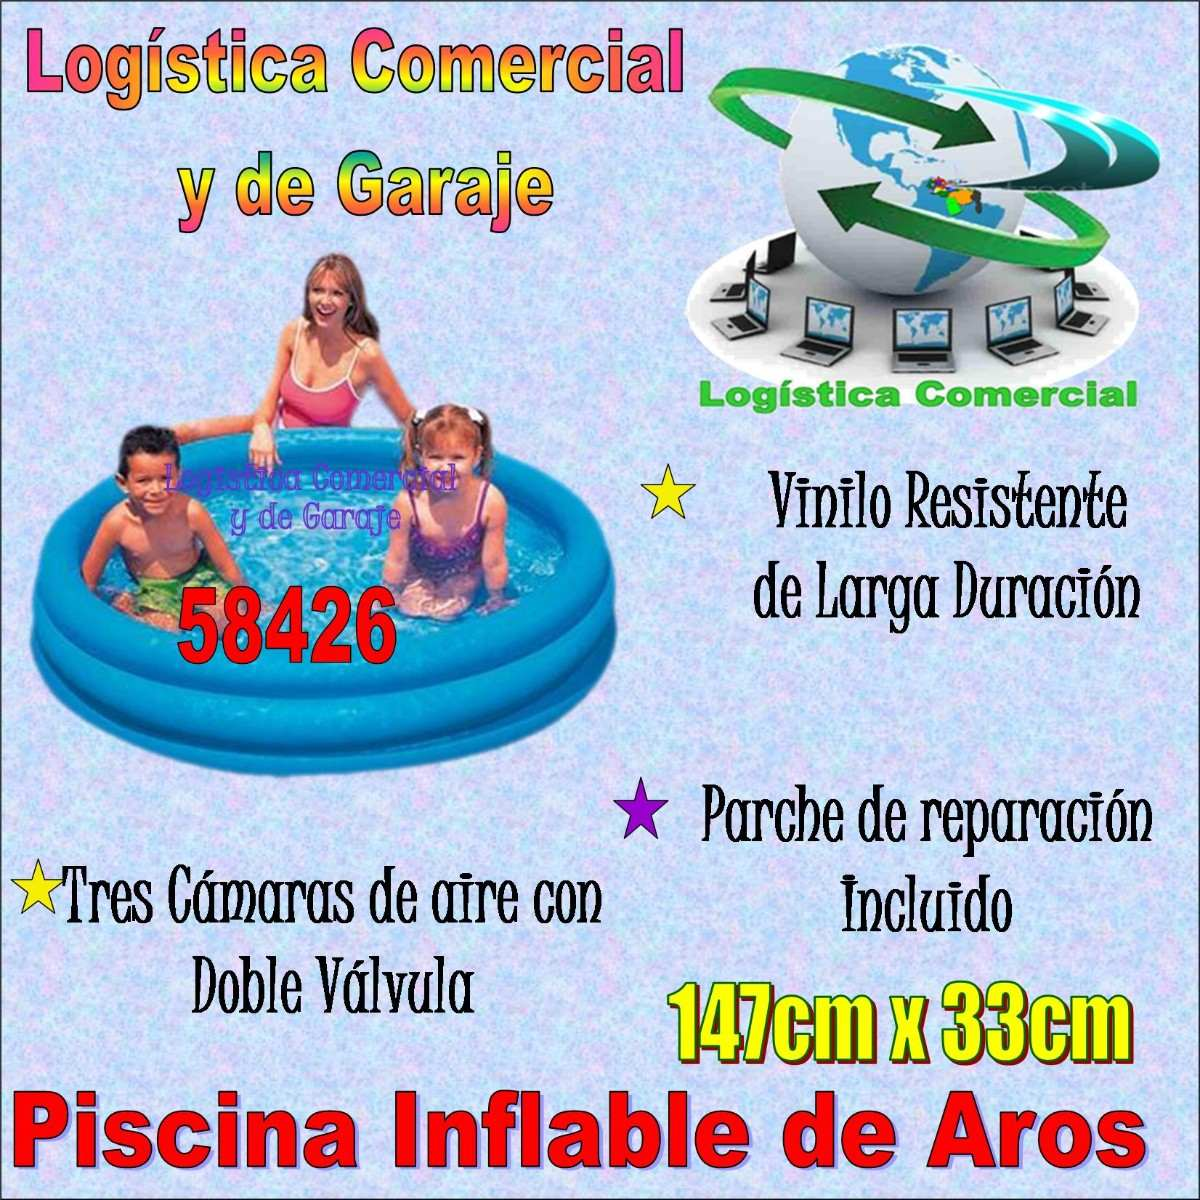 Piscina Inflable 3 Aros Azul Ni Os Intex 147cm X 33cm